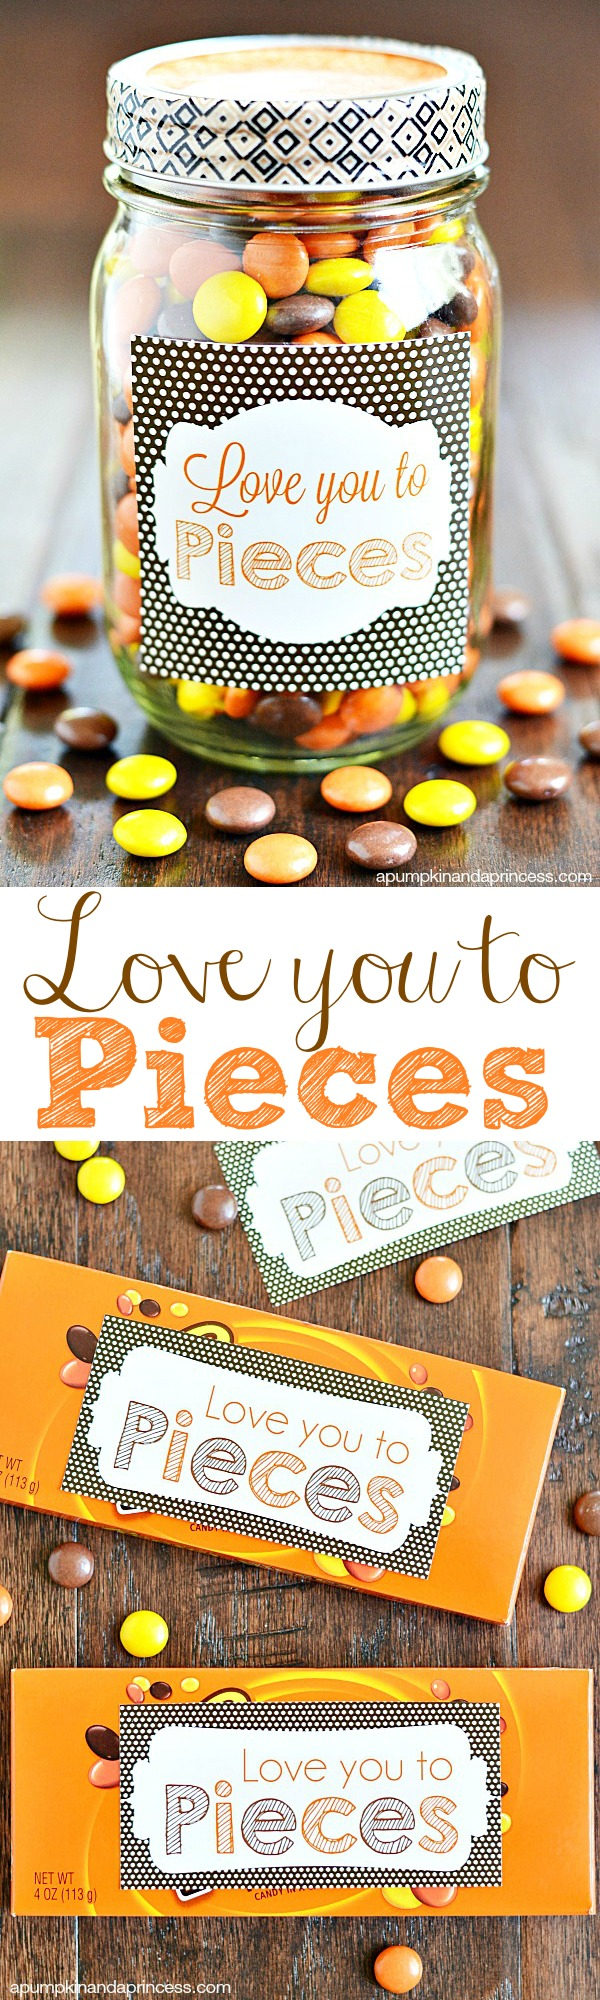 Love you to pieces printable tag